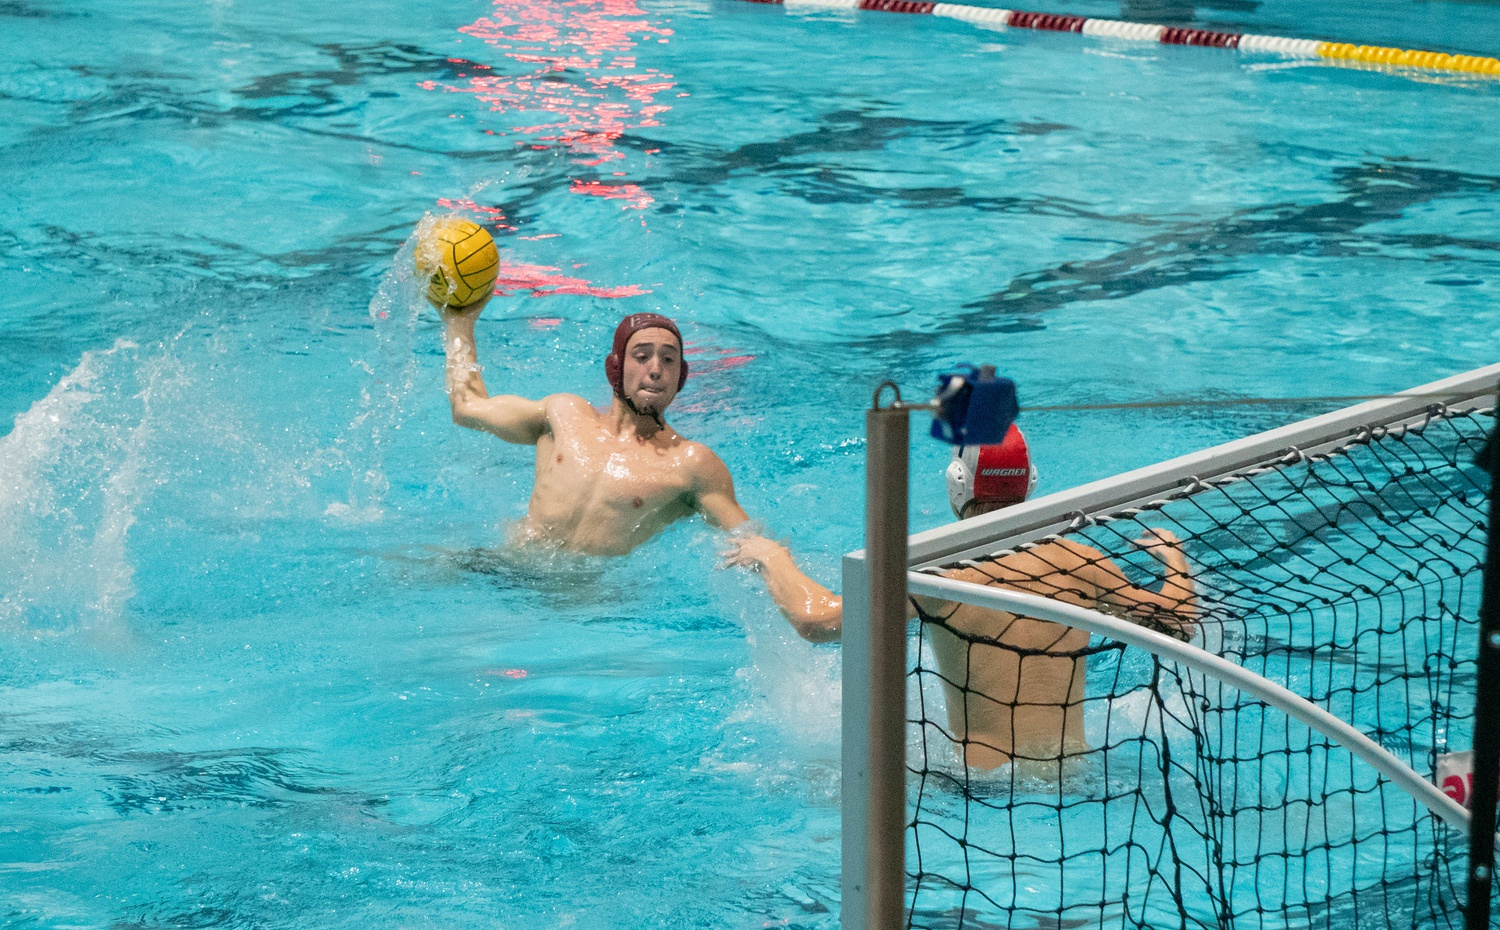 Junior attacker Alex Tsotadze launches a shot in last week's matchup with Wagner College, a contest in which he scored three goals. Tsotadze tallied four goals in Sunday's 16-10 victory over its neighboring university, MIT, which bumped the team's record to 13-2.